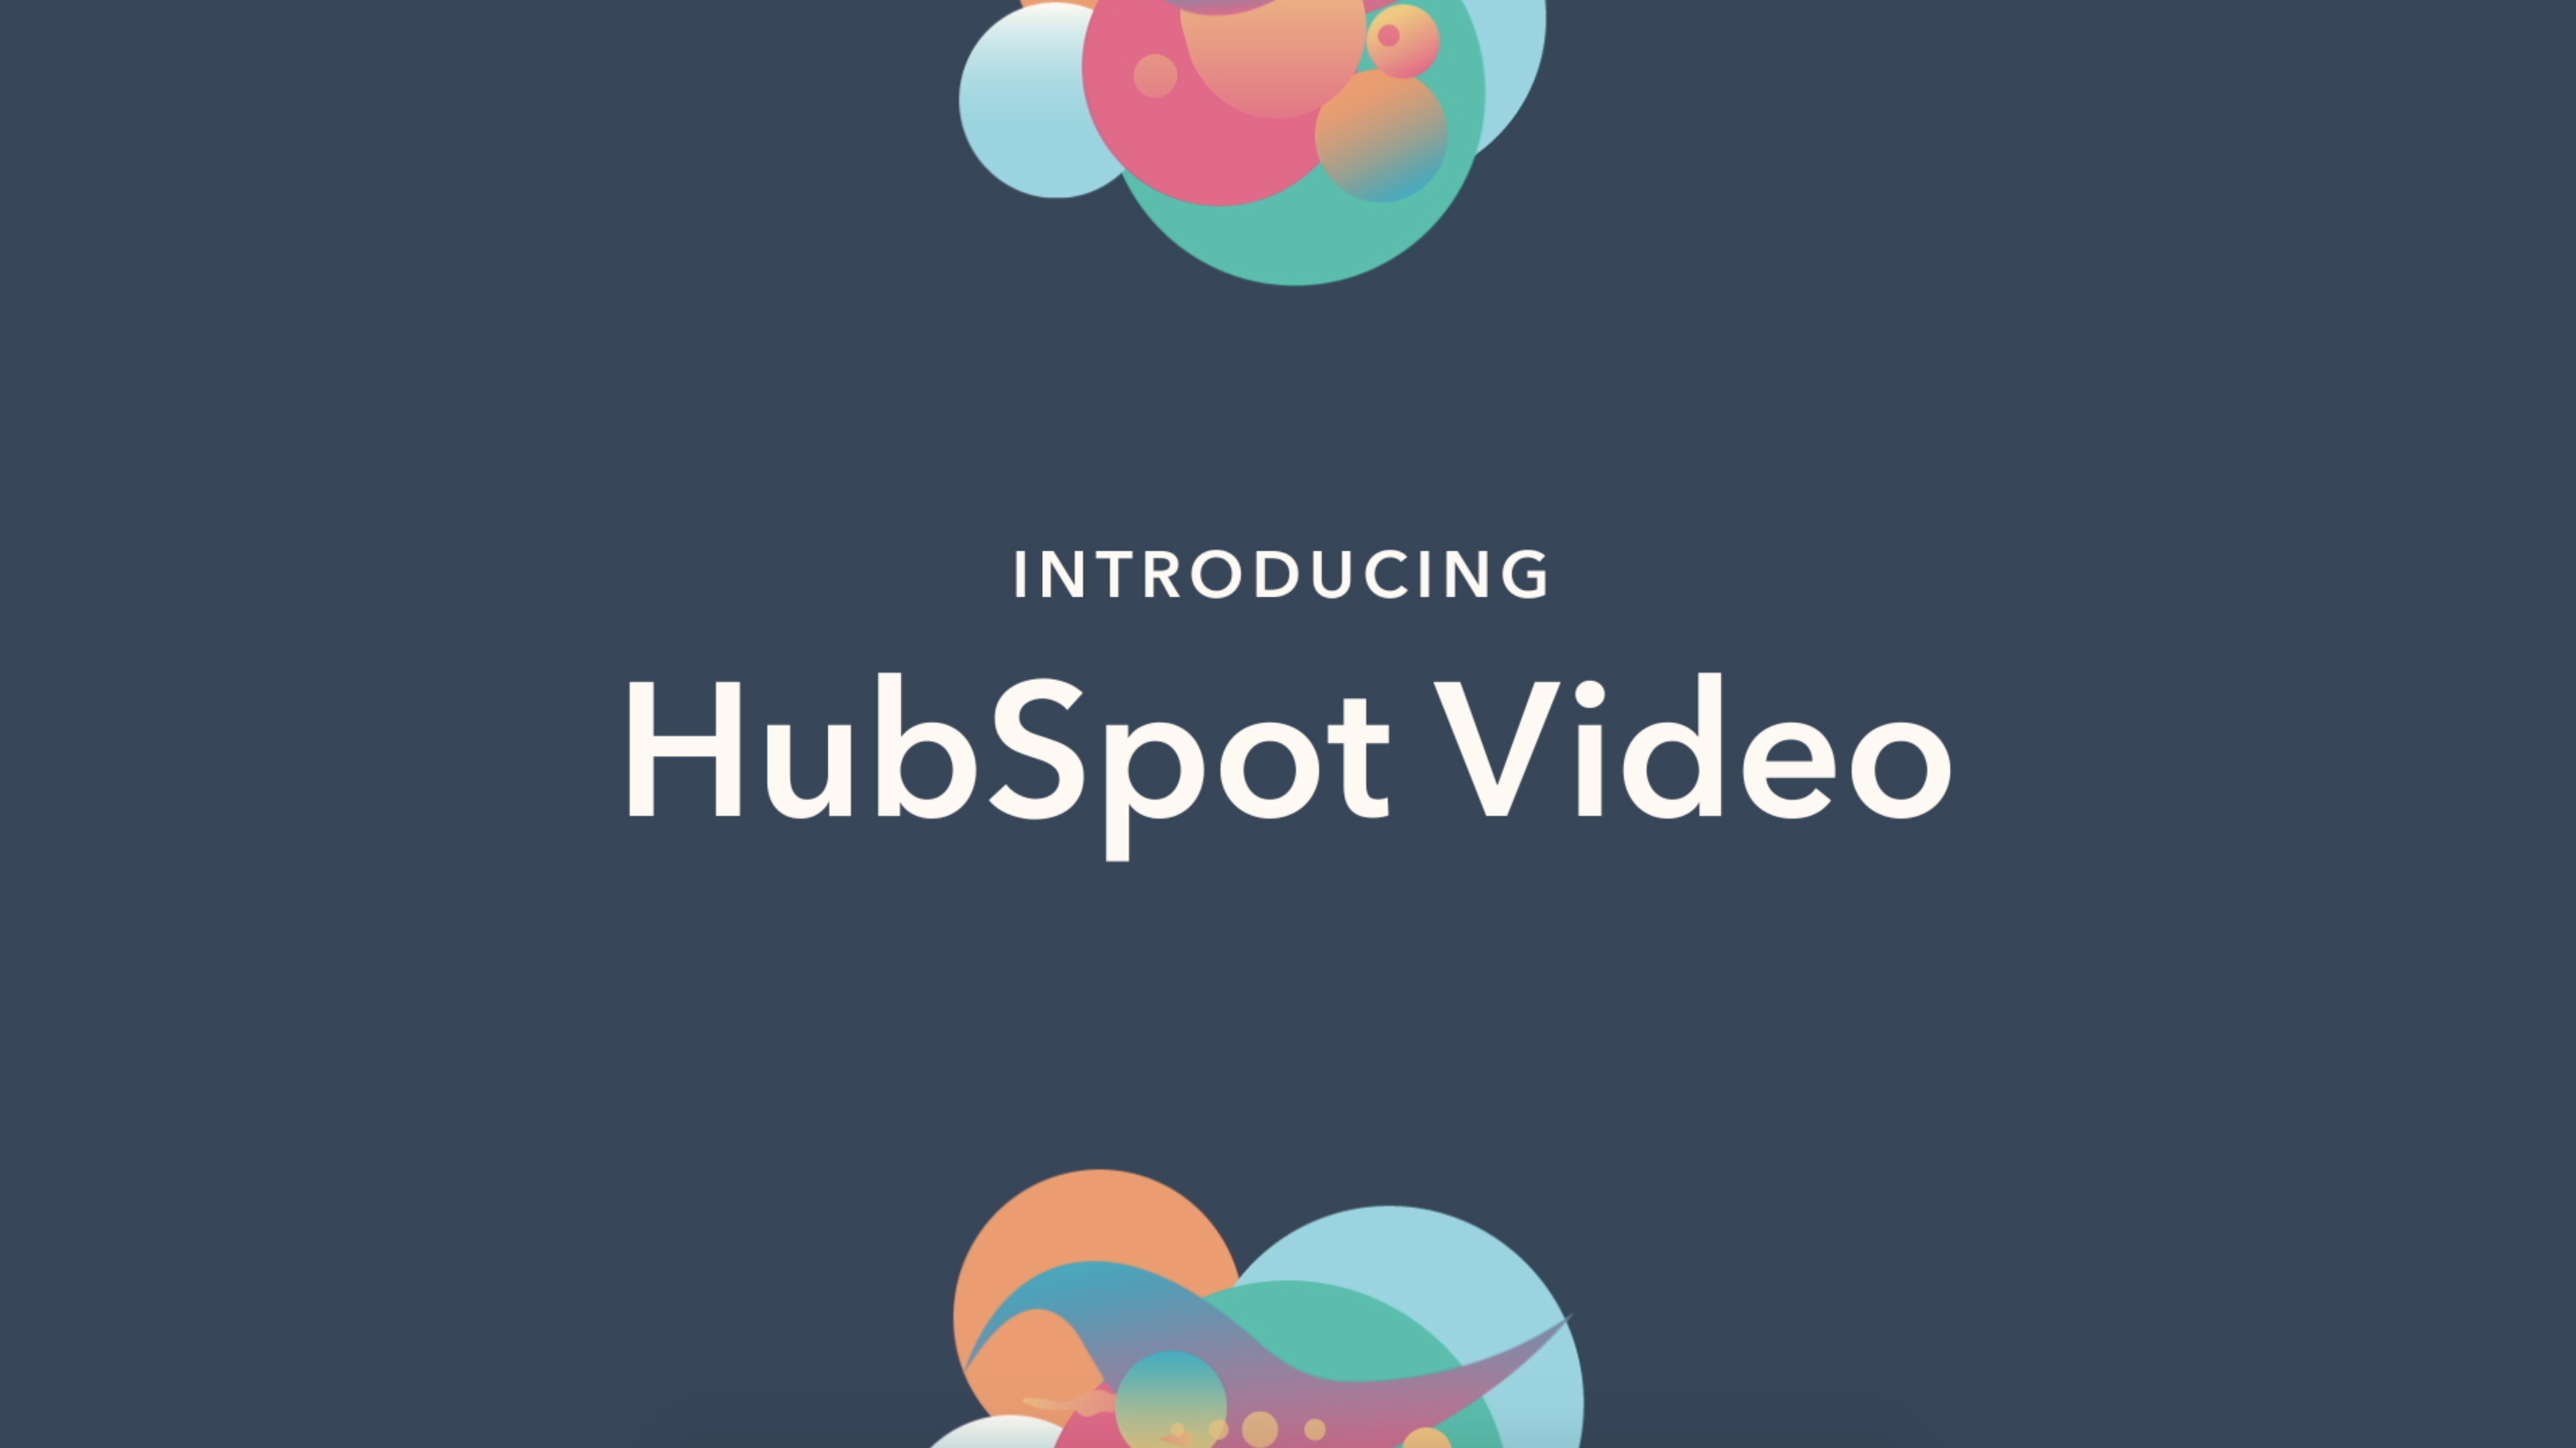 An introduction to hubspot video